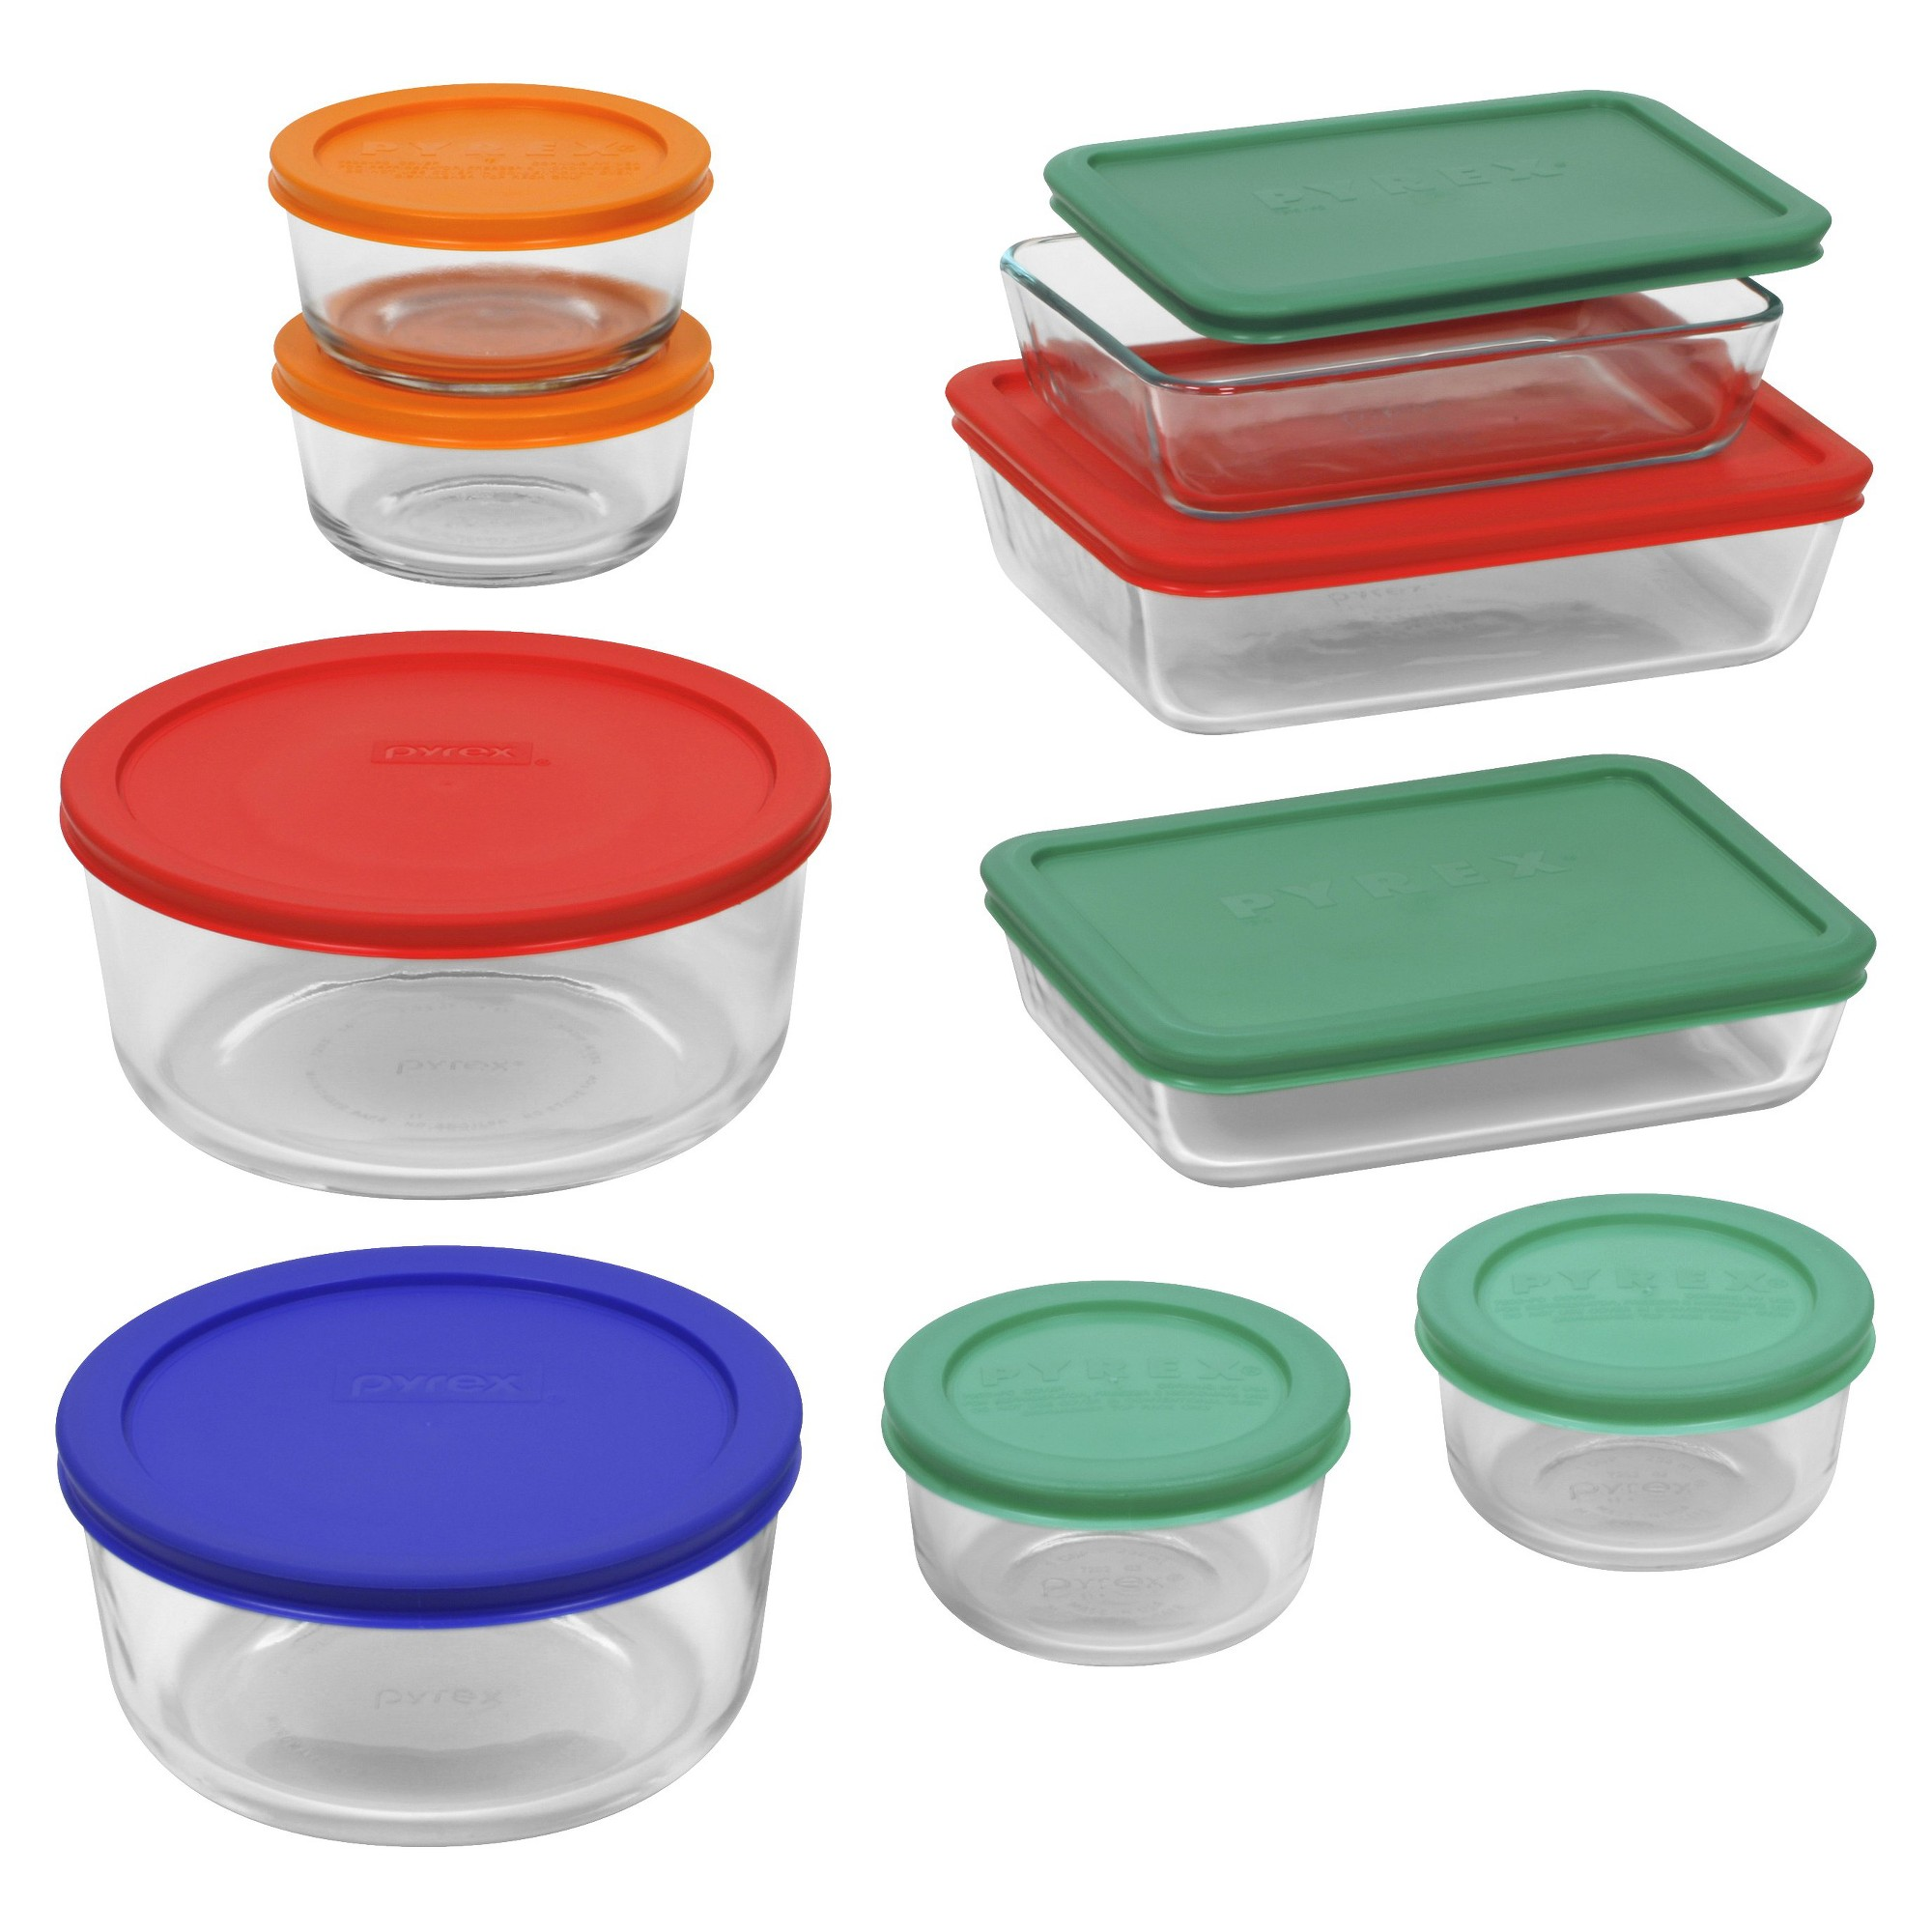 Pyrex 18pc Glass Food Storage Set, Clear